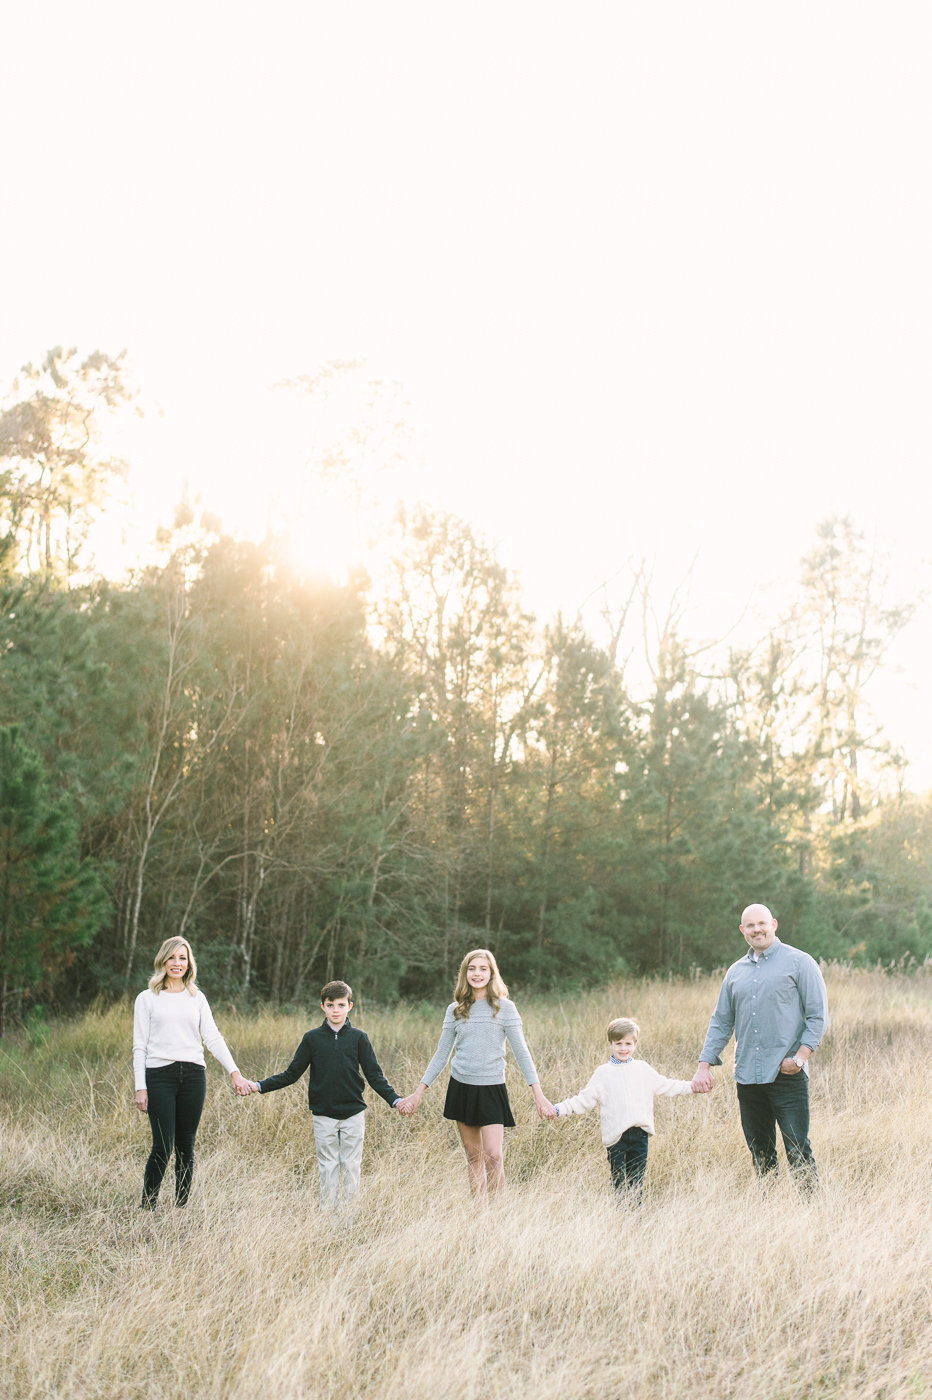 thewoodlands-family-portrait-photographer-6